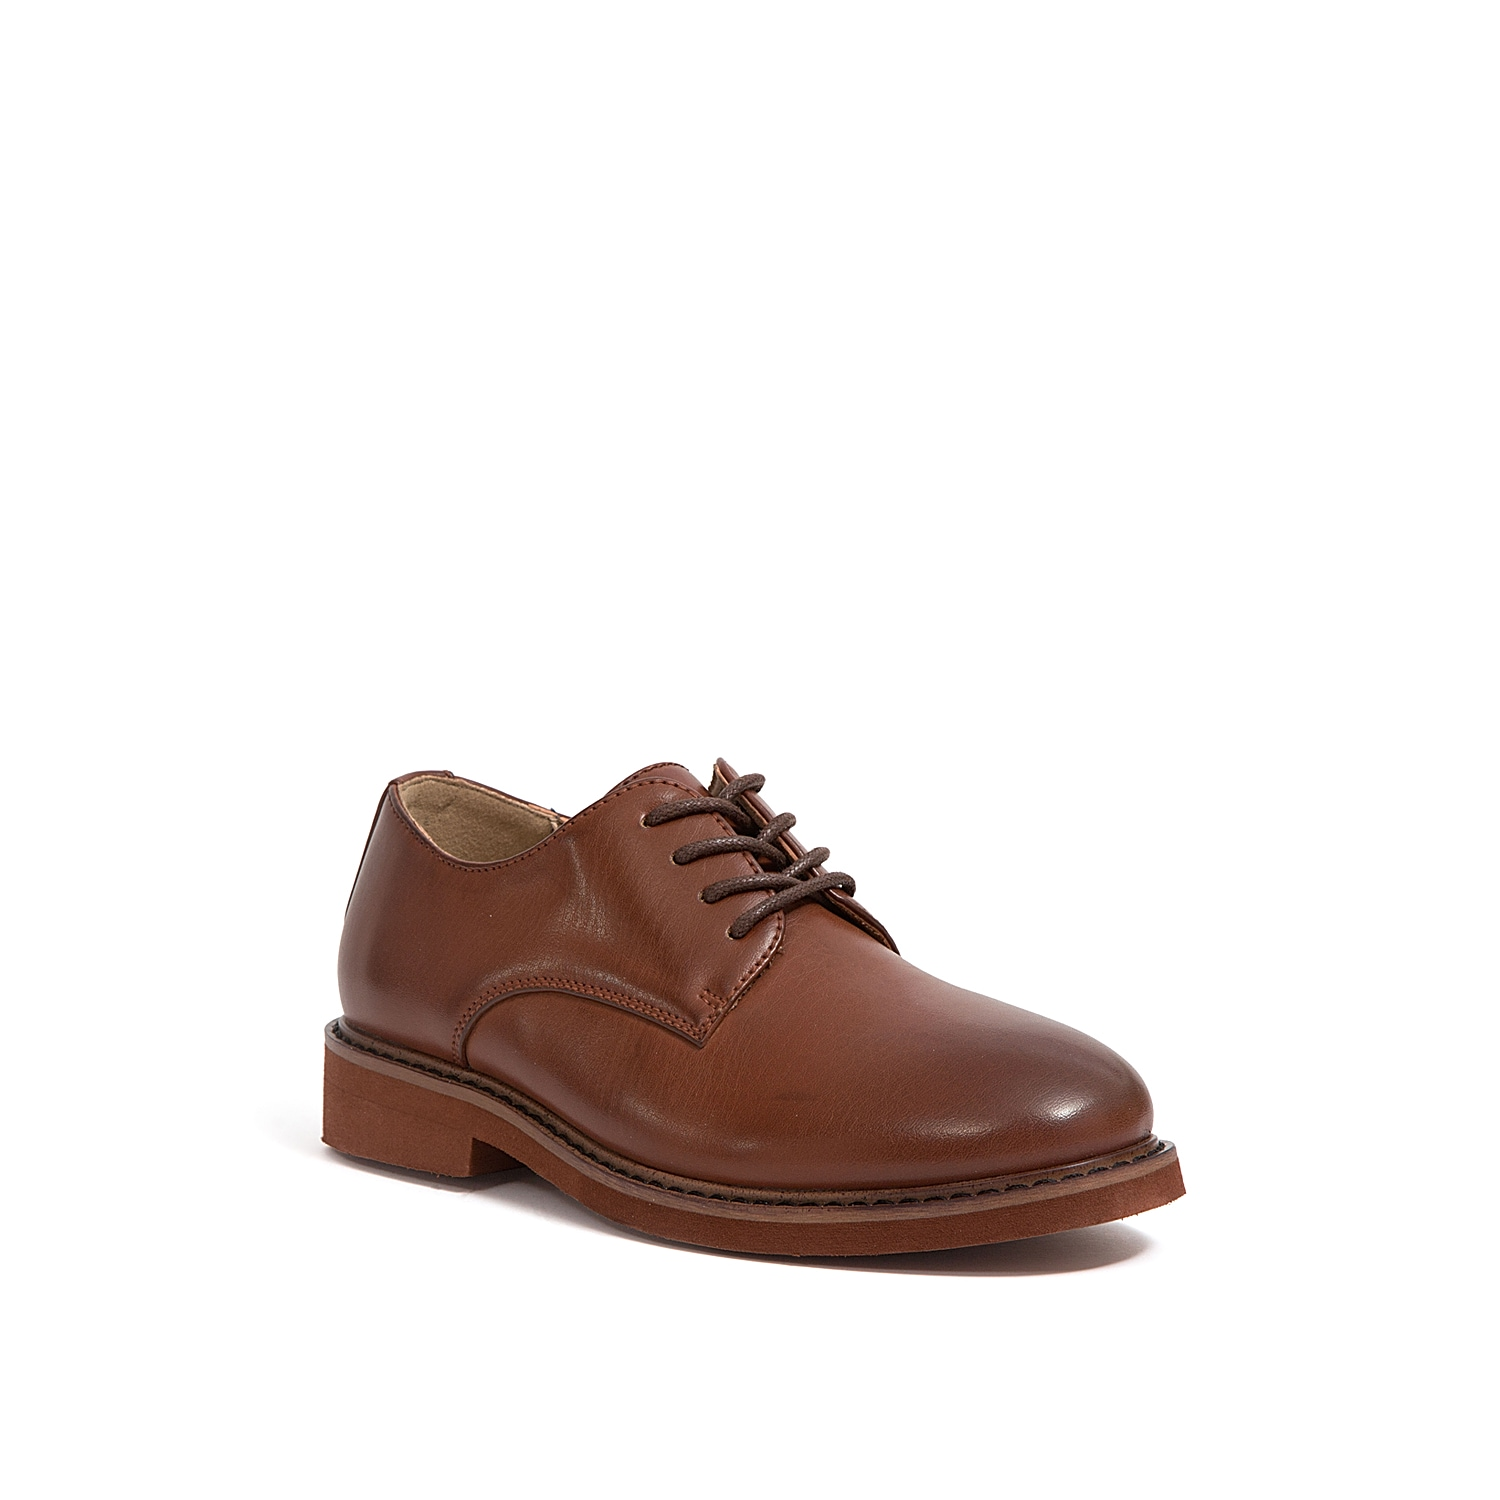 He will feel extra sophisticated in the Denny oxford from Deer Stags. This dress shoe is perfect for weddings, church, school picture day, or any other dressy event! Not sure which size to order? Clickhereto check out our Kids' Measuring Guide! For more helpful tips and sizing FAQs, clickhere.